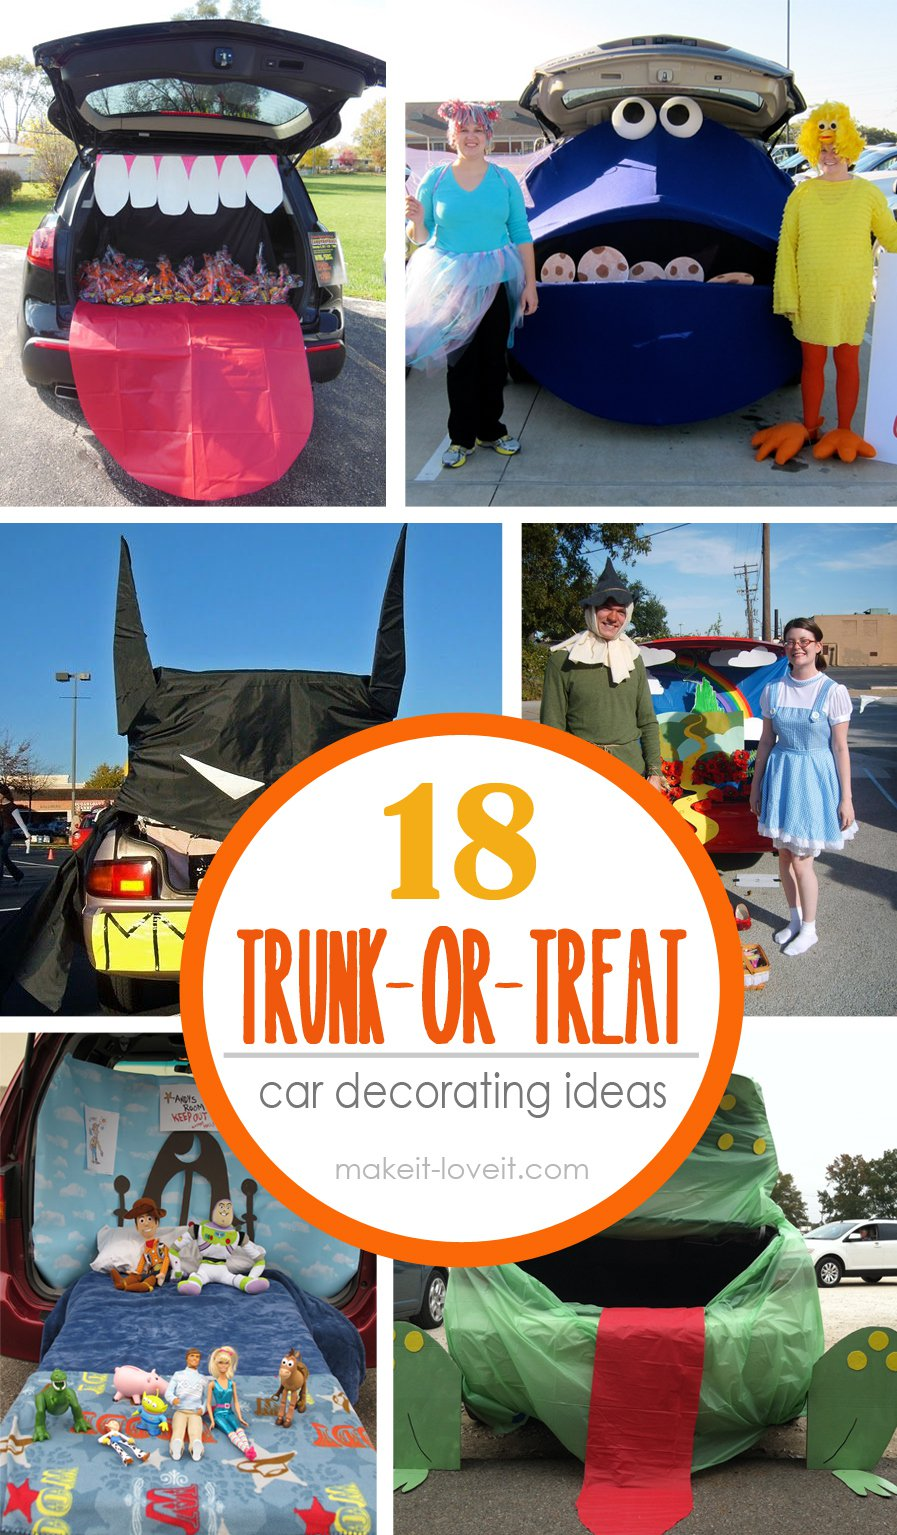 18-trunk-or-treat-ideas